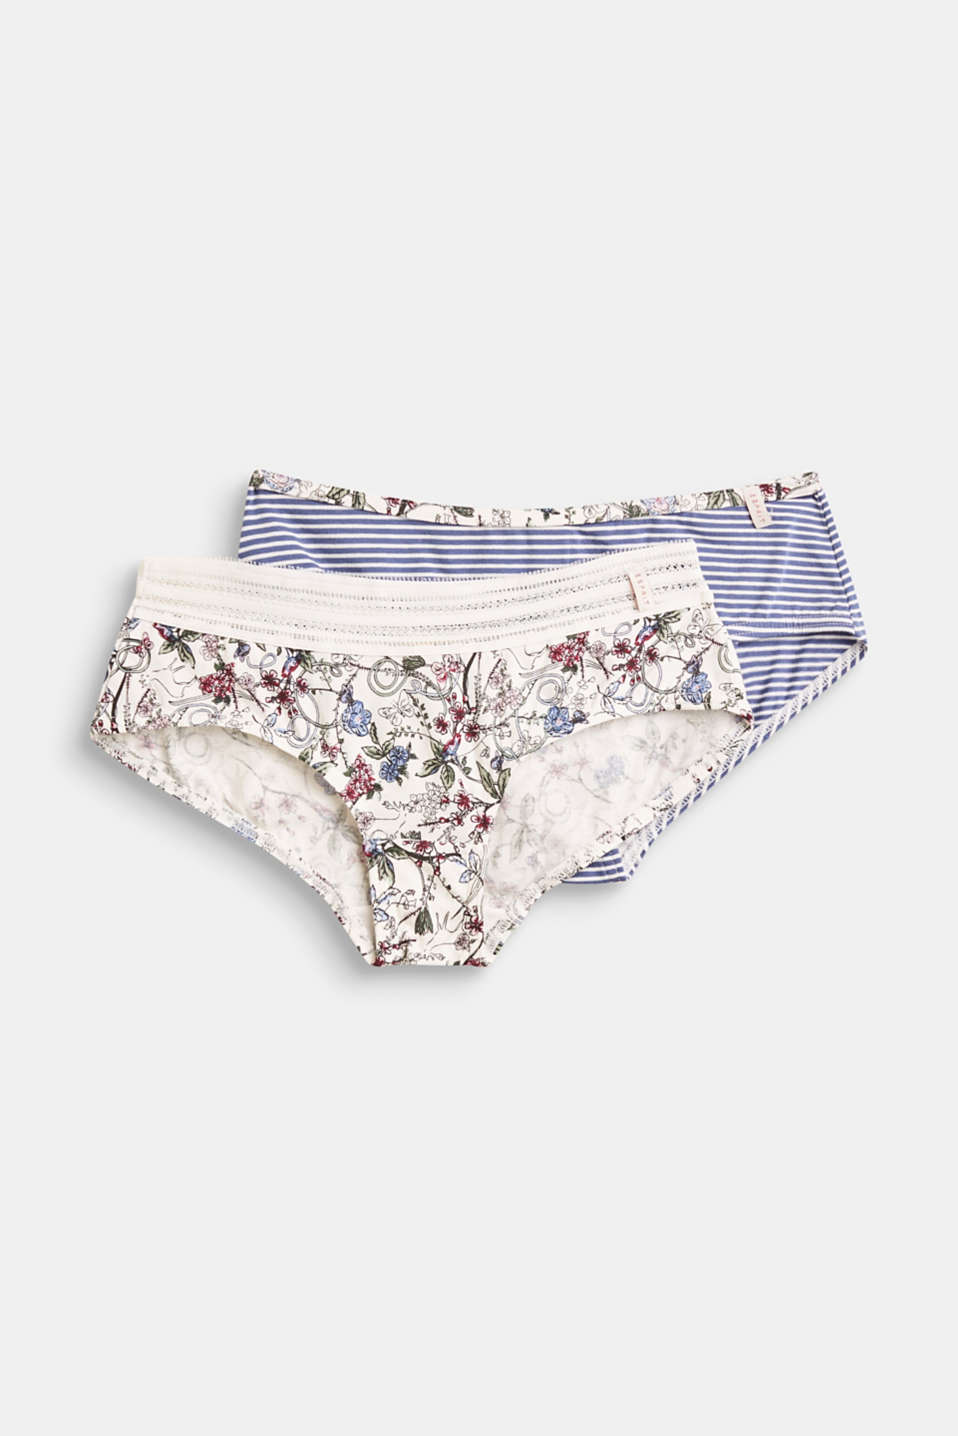 Esprit - Lot de 2 shortys taille basse en coton stretch